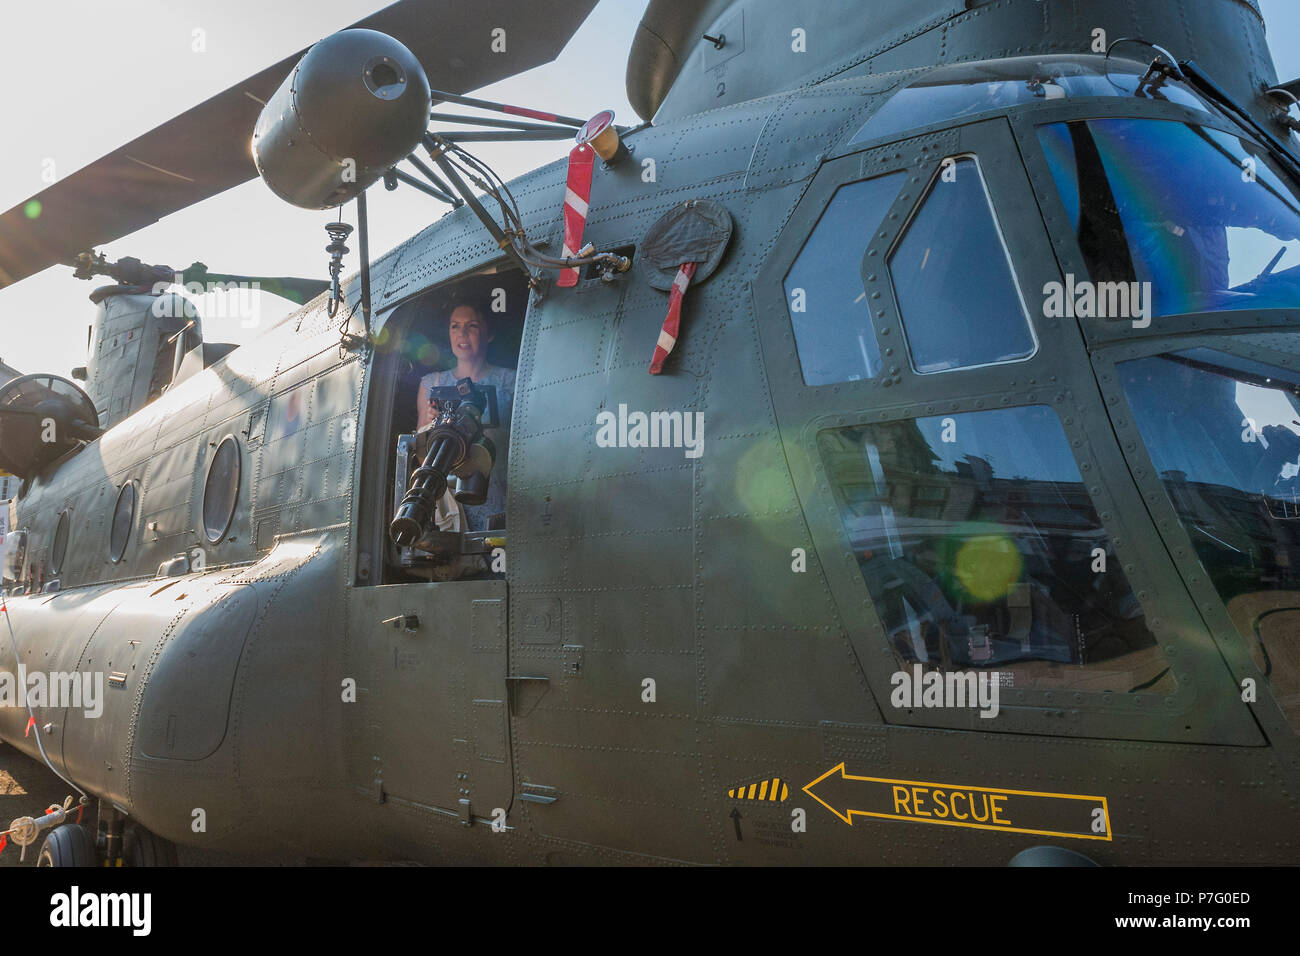 London, UK. 6th July 2018. A weather presenter sets up a shot on the Chinook, the twin-rotor helicopter - RAF 100, Horse Guards Parade. As part of the 100th Anniversary celebrations of the Royal Air Force, an exhibition of aircraft covering the RAF's history, from WW1 and WW2 through to the modern age. Credit: Guy Bell/Alamy Live News - Stock Image